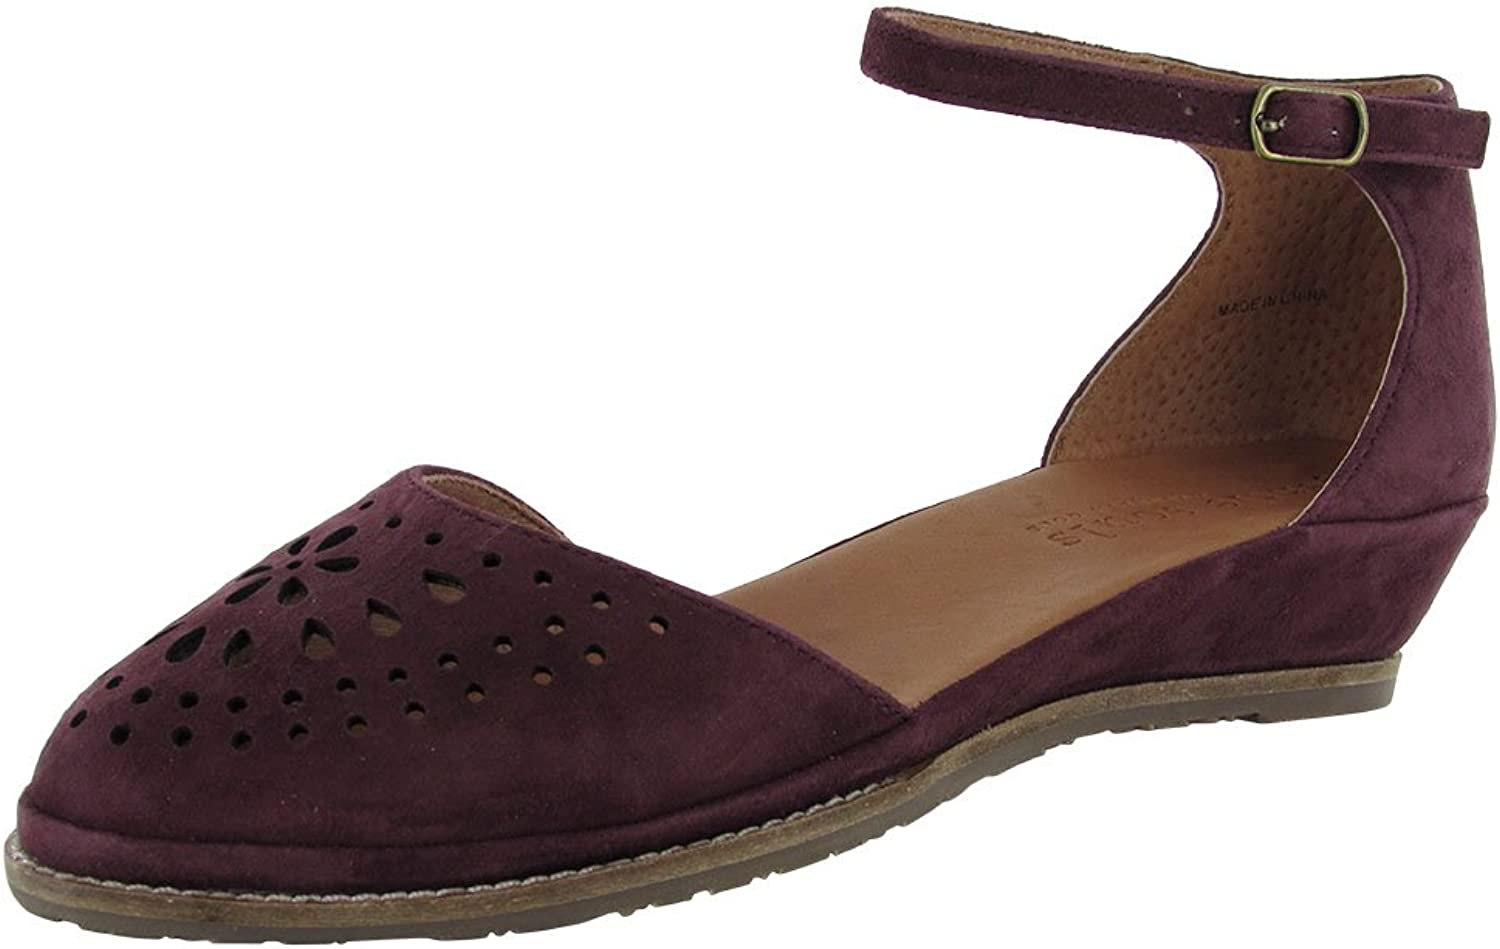 Gentle Souls Womens Naomi Suede Wedge Sandal shoes